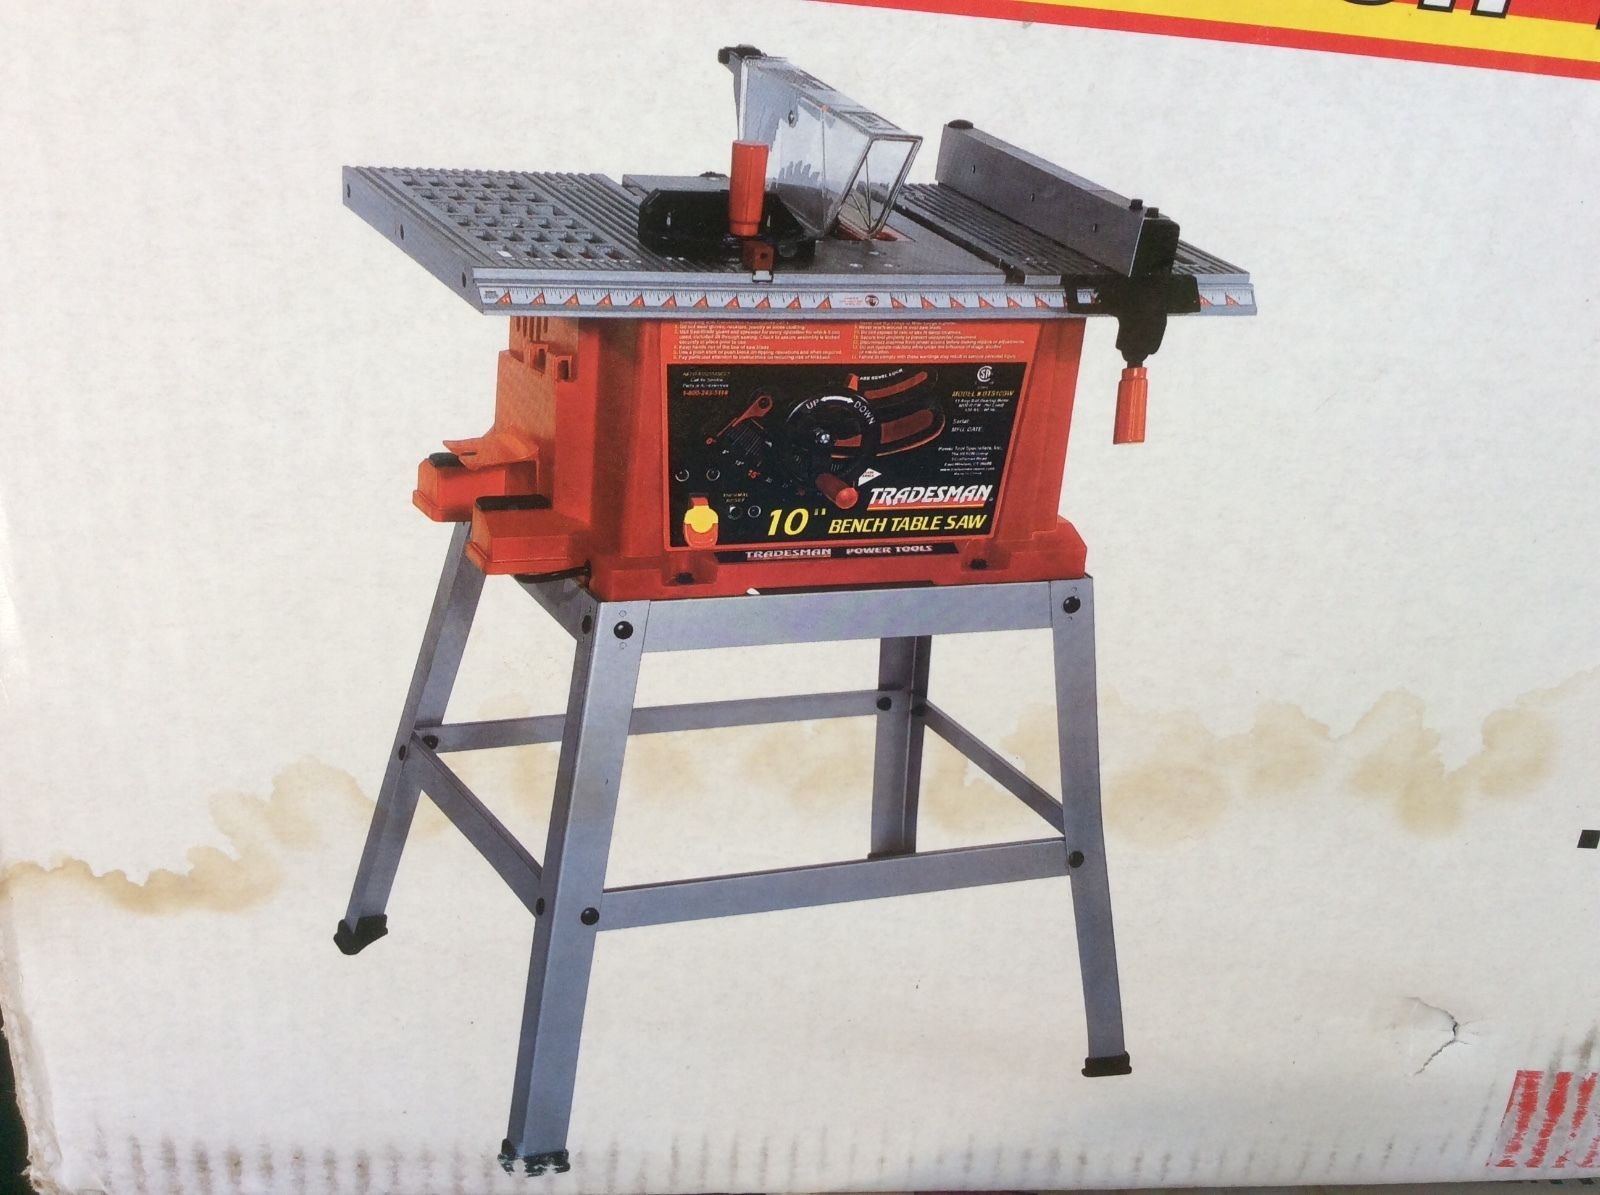 Tradesman Woodworker 10 13 Amp Bench Table Saw New In Box Bts10bw Ebay Bench Table Table Saw Table Saw Stand